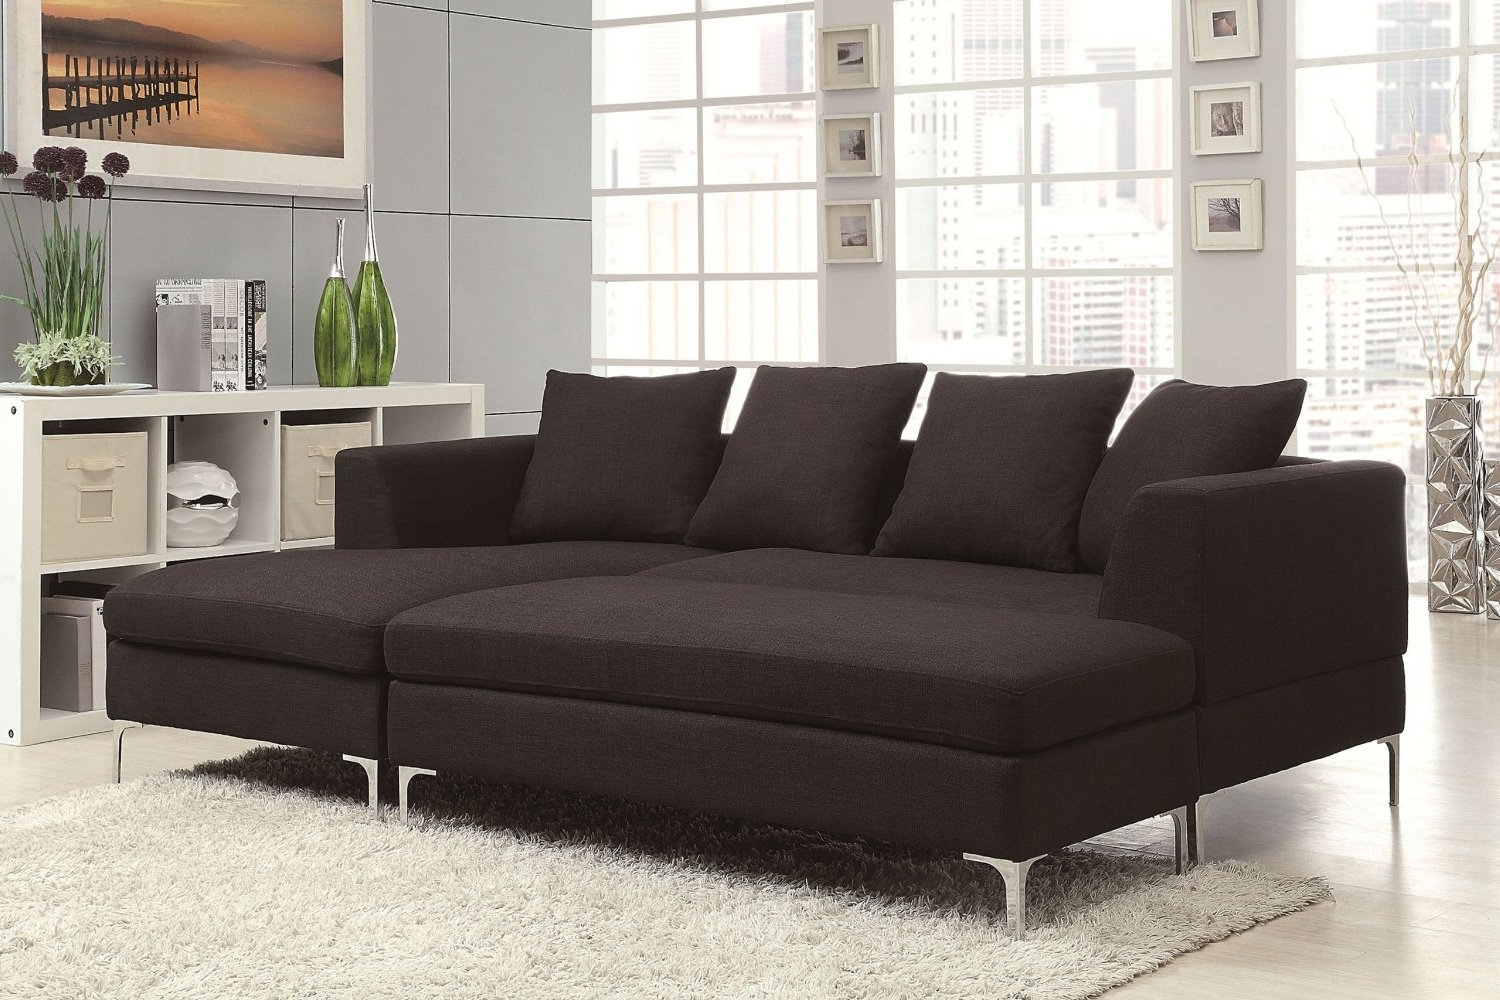 Beautiful Sectional Sofas With Chaise Lounge Gallery – Liltigertoo Pertaining To Well Liked Adjustable Sectional Sofas With Queen Bed (View 10 of 15)